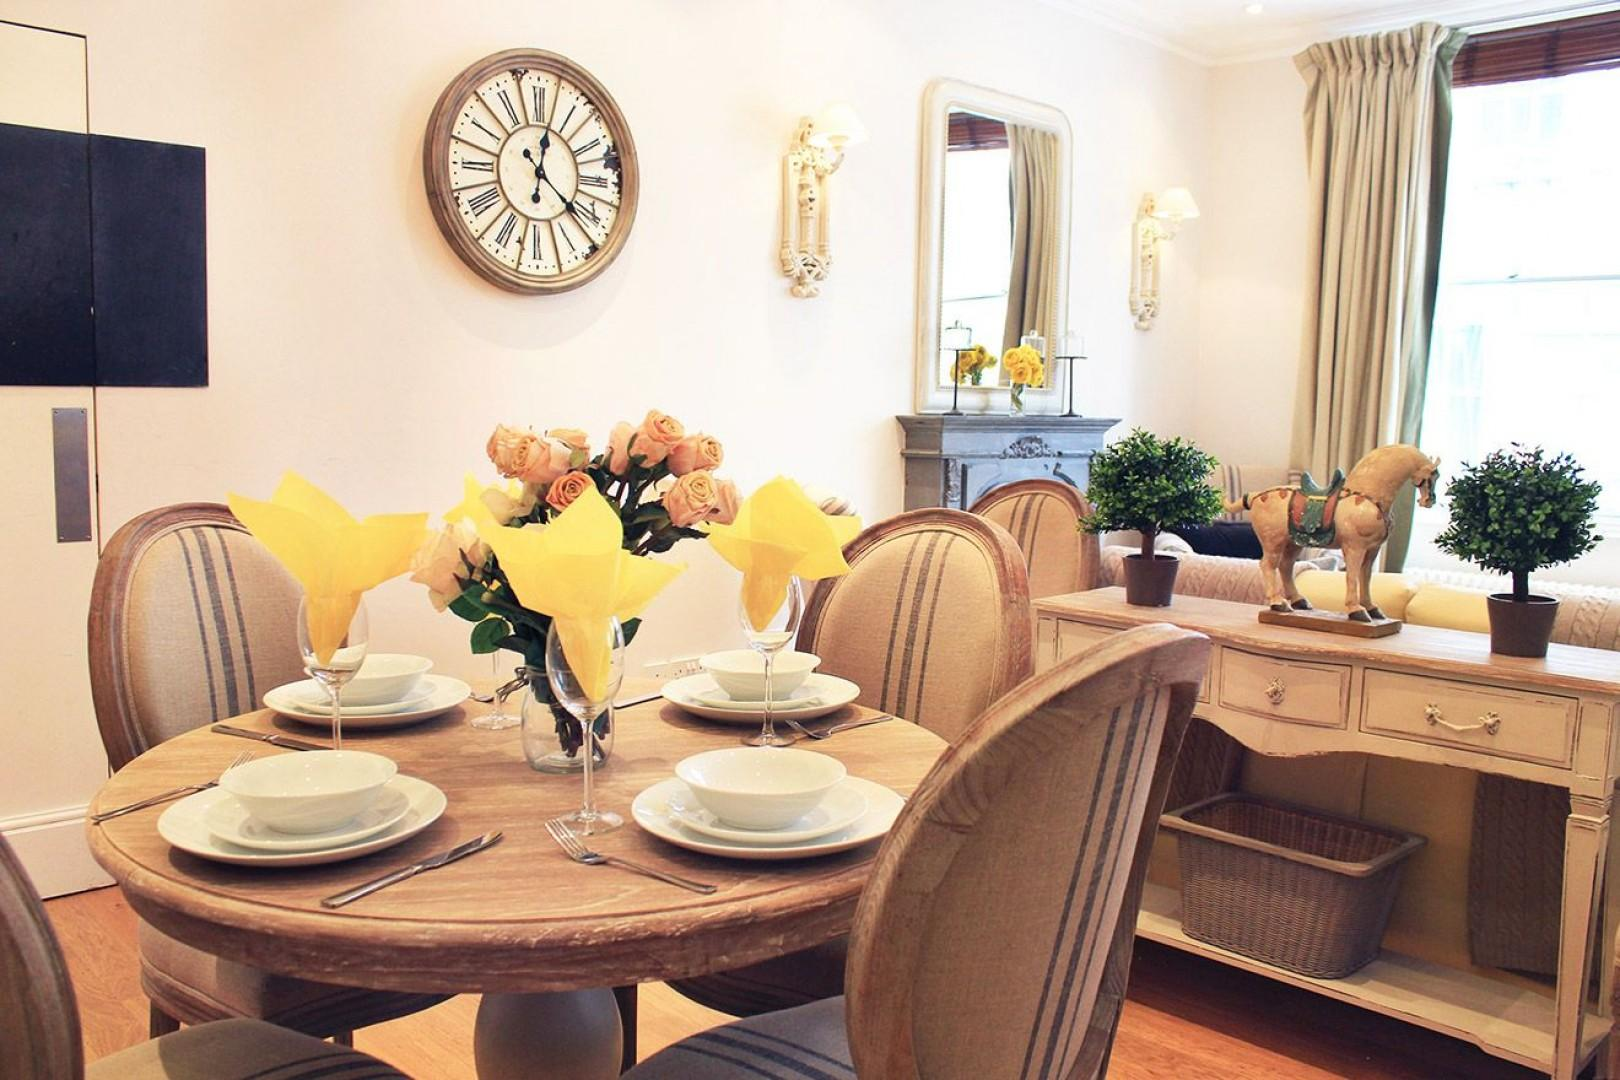 Enjoy elegant dining at home during your stay in London